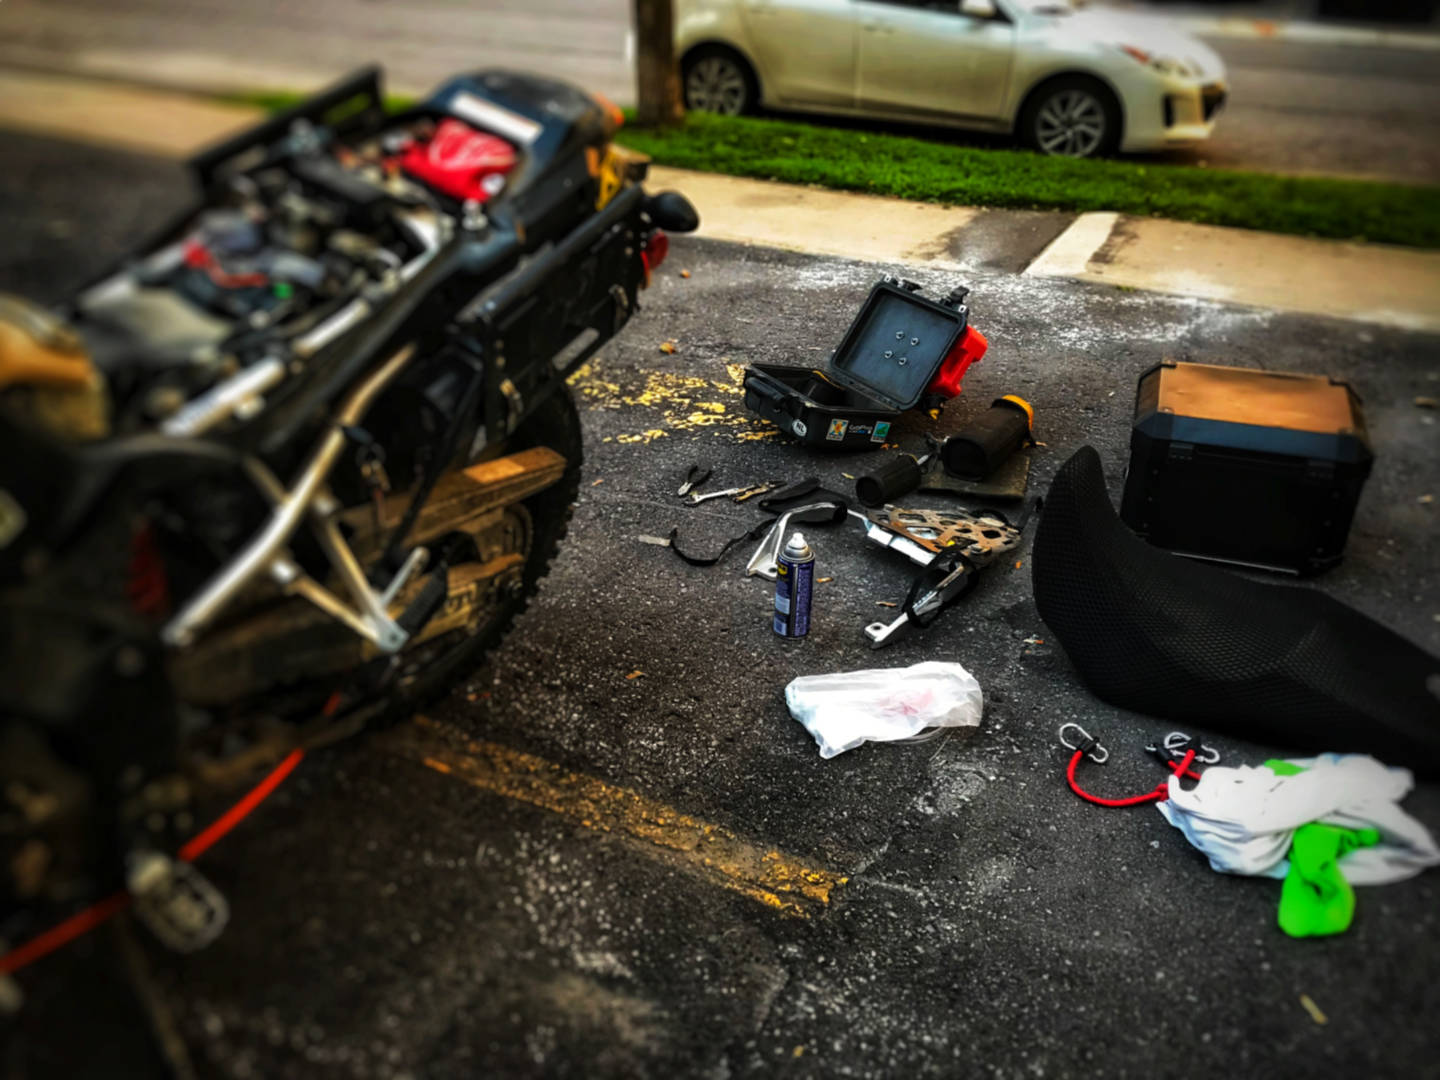 a photo of a Suzuki motorcycle being repaired in a parking lot